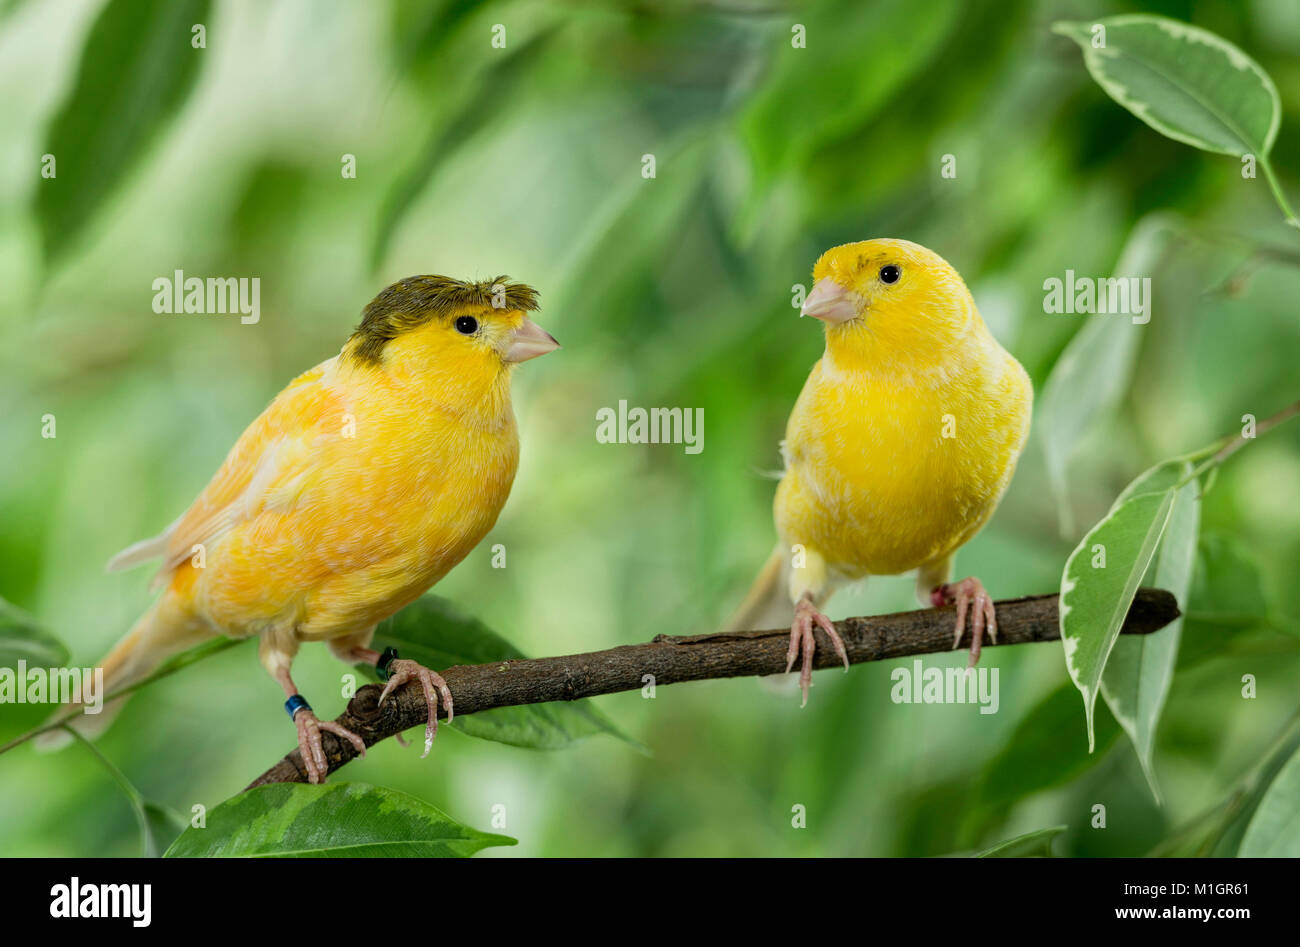 Domestic Canary. Crested and yellow bird perched on a Benjamin Fig twig. Germany - Stock Image